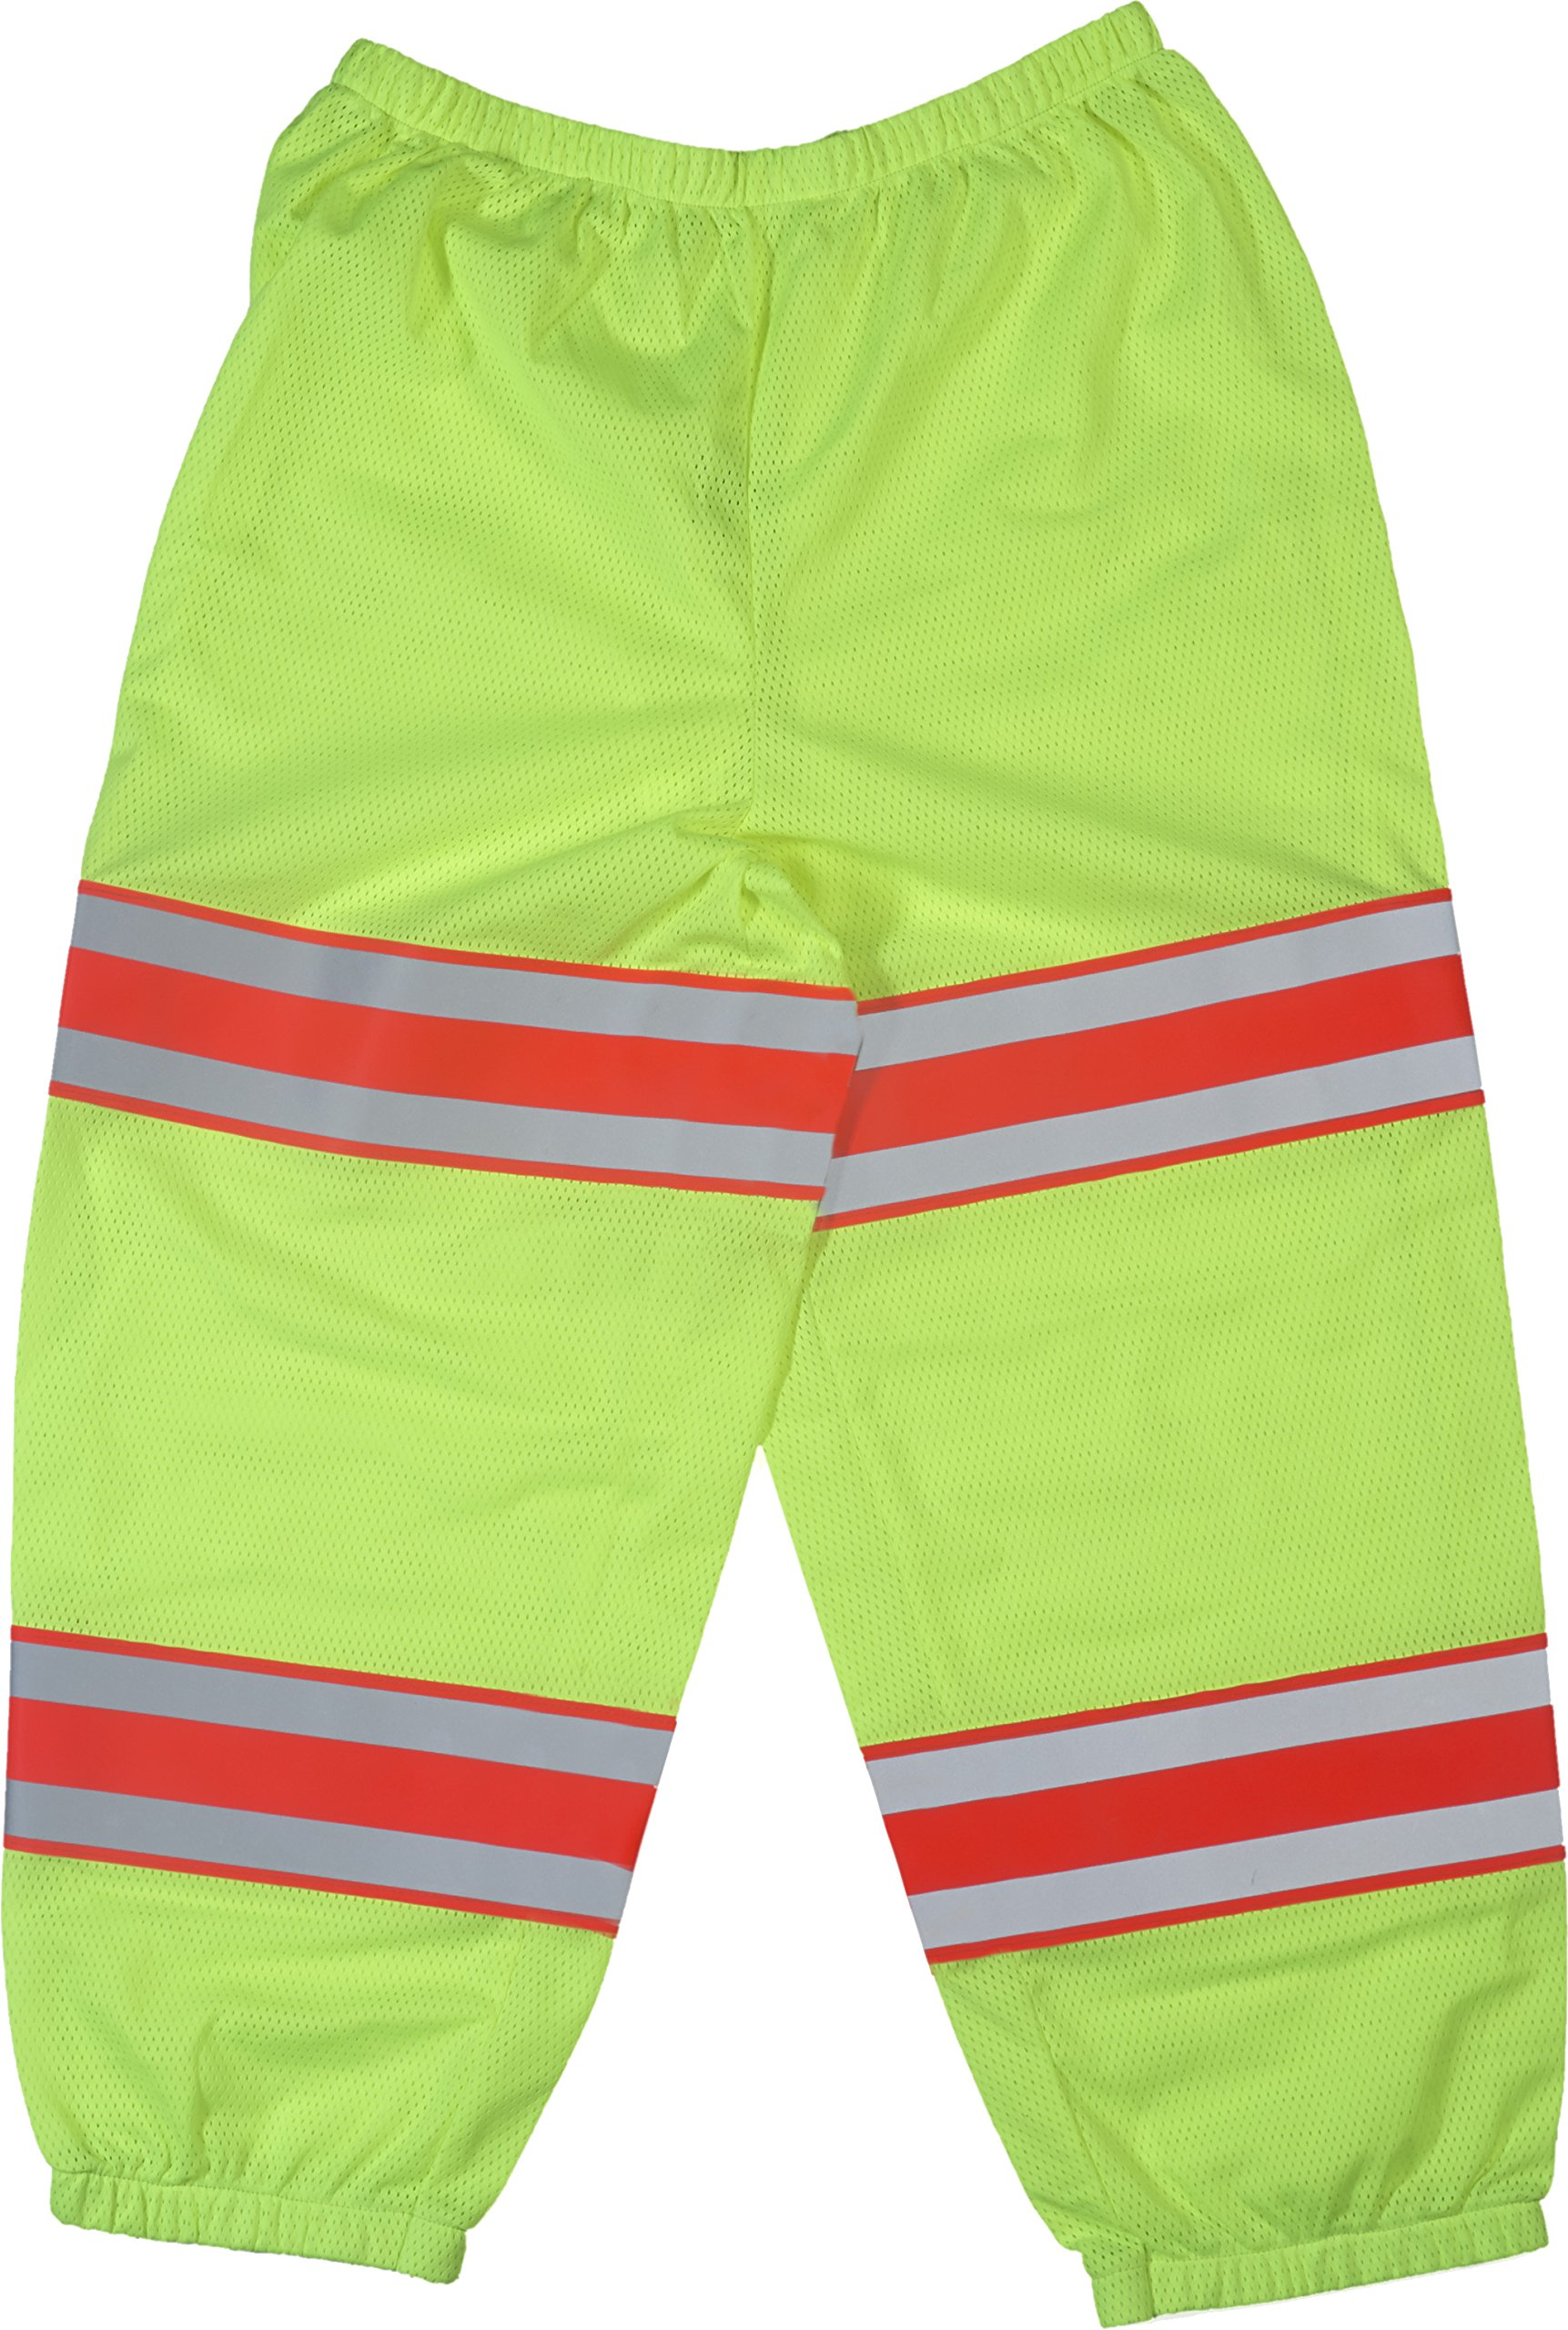 Mutual Industries 16367-139 High Visibility Polyester ANSI Class E Mesh Pant with 4'' Silver/Orange/Silver Reflective Tapes, Lime